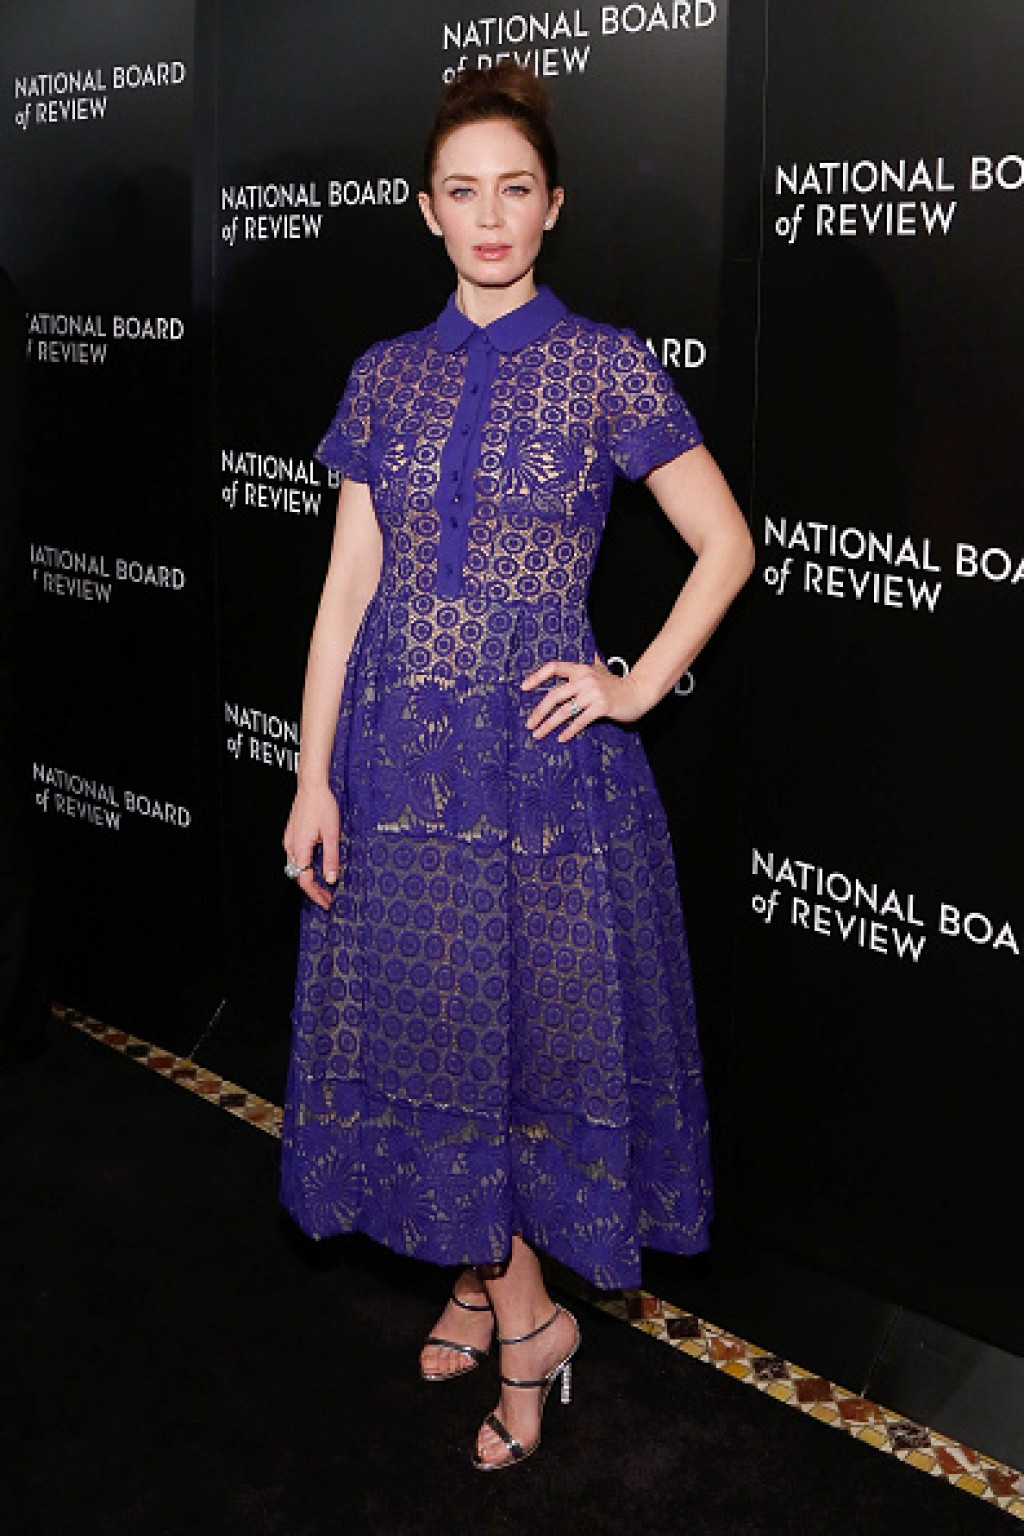 Emily-Blunt-016-National-Board-of-Review-Gala-elie-saab-gown-1024x1536